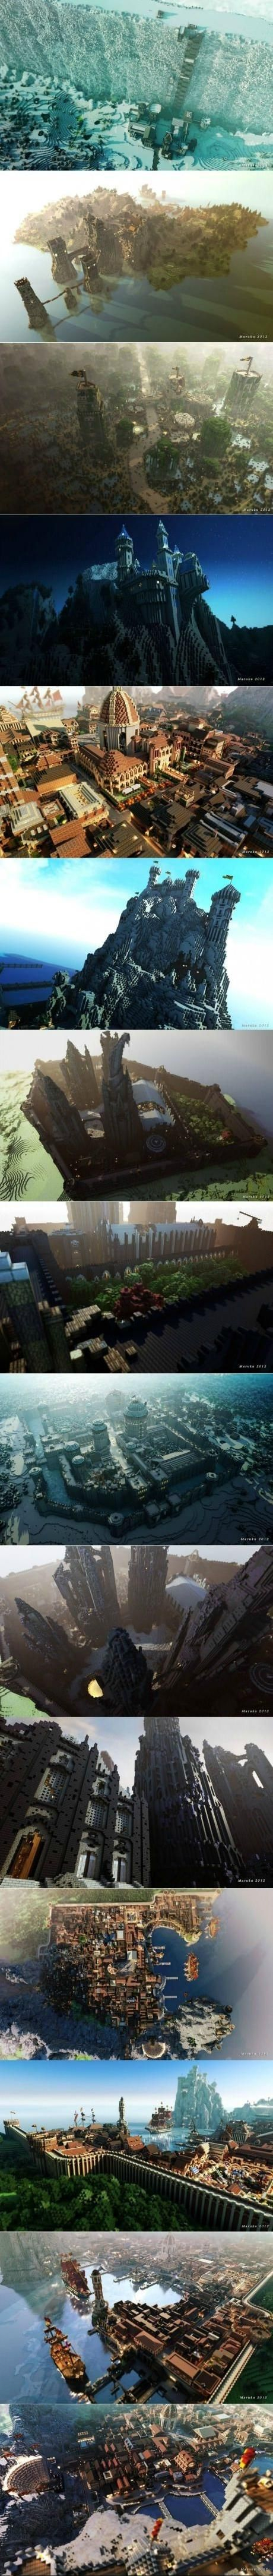 How do people have time for this?! So amazing, wish I could build like this!